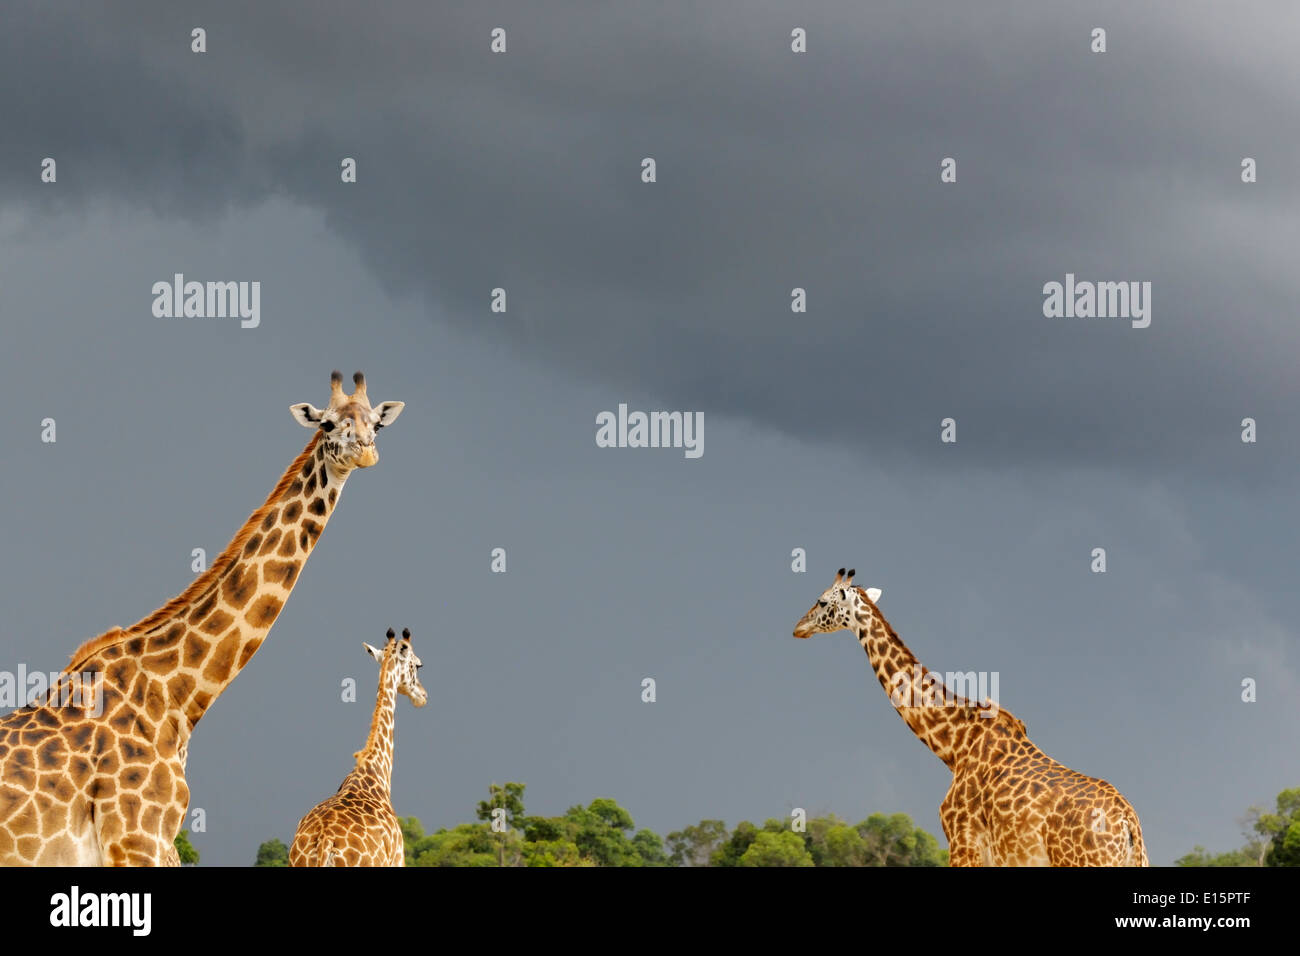 Three Masai Giraffes (Giraffa camelopardalis tippelskirchi) walking with a dark sky in background. - Stock Image